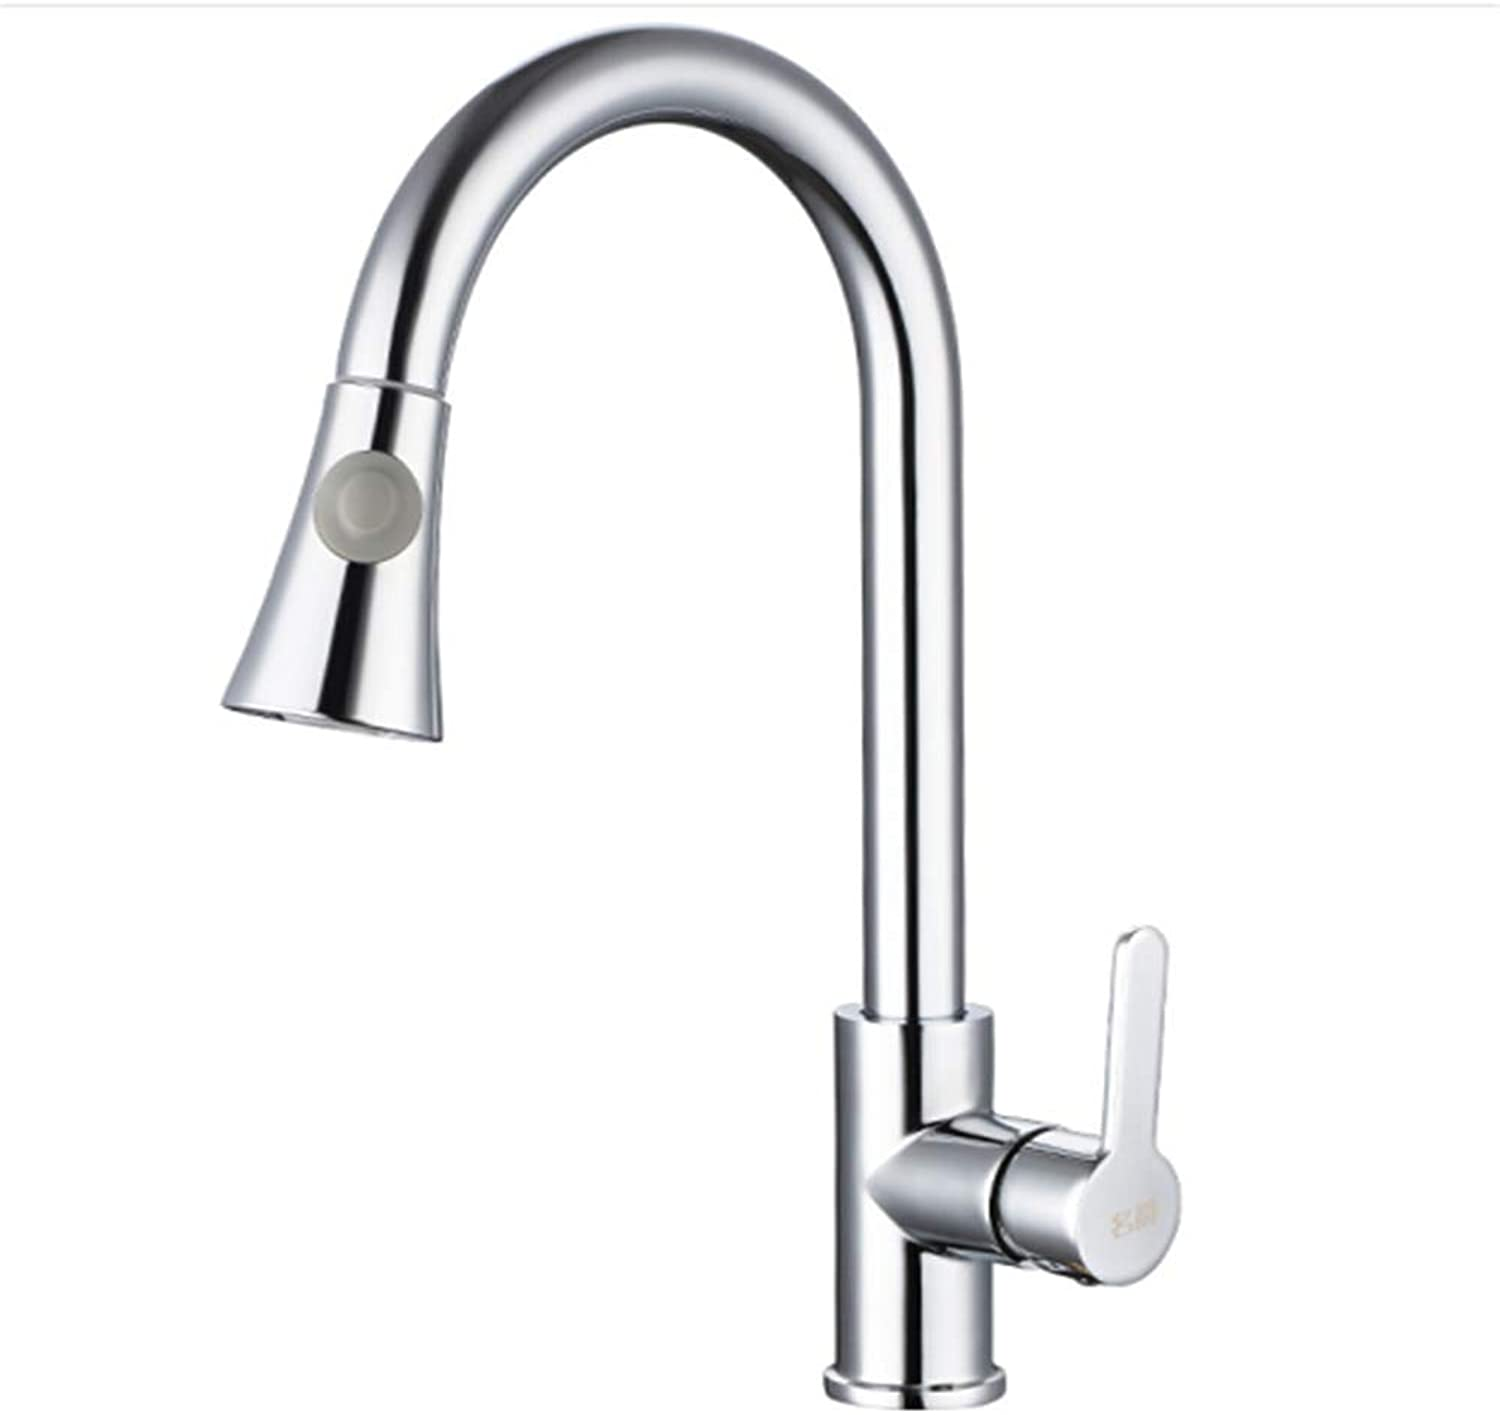 All Copper Main Kitchen Faucet hot and Cold wash Vegetable Basin Sink Pull Faucet